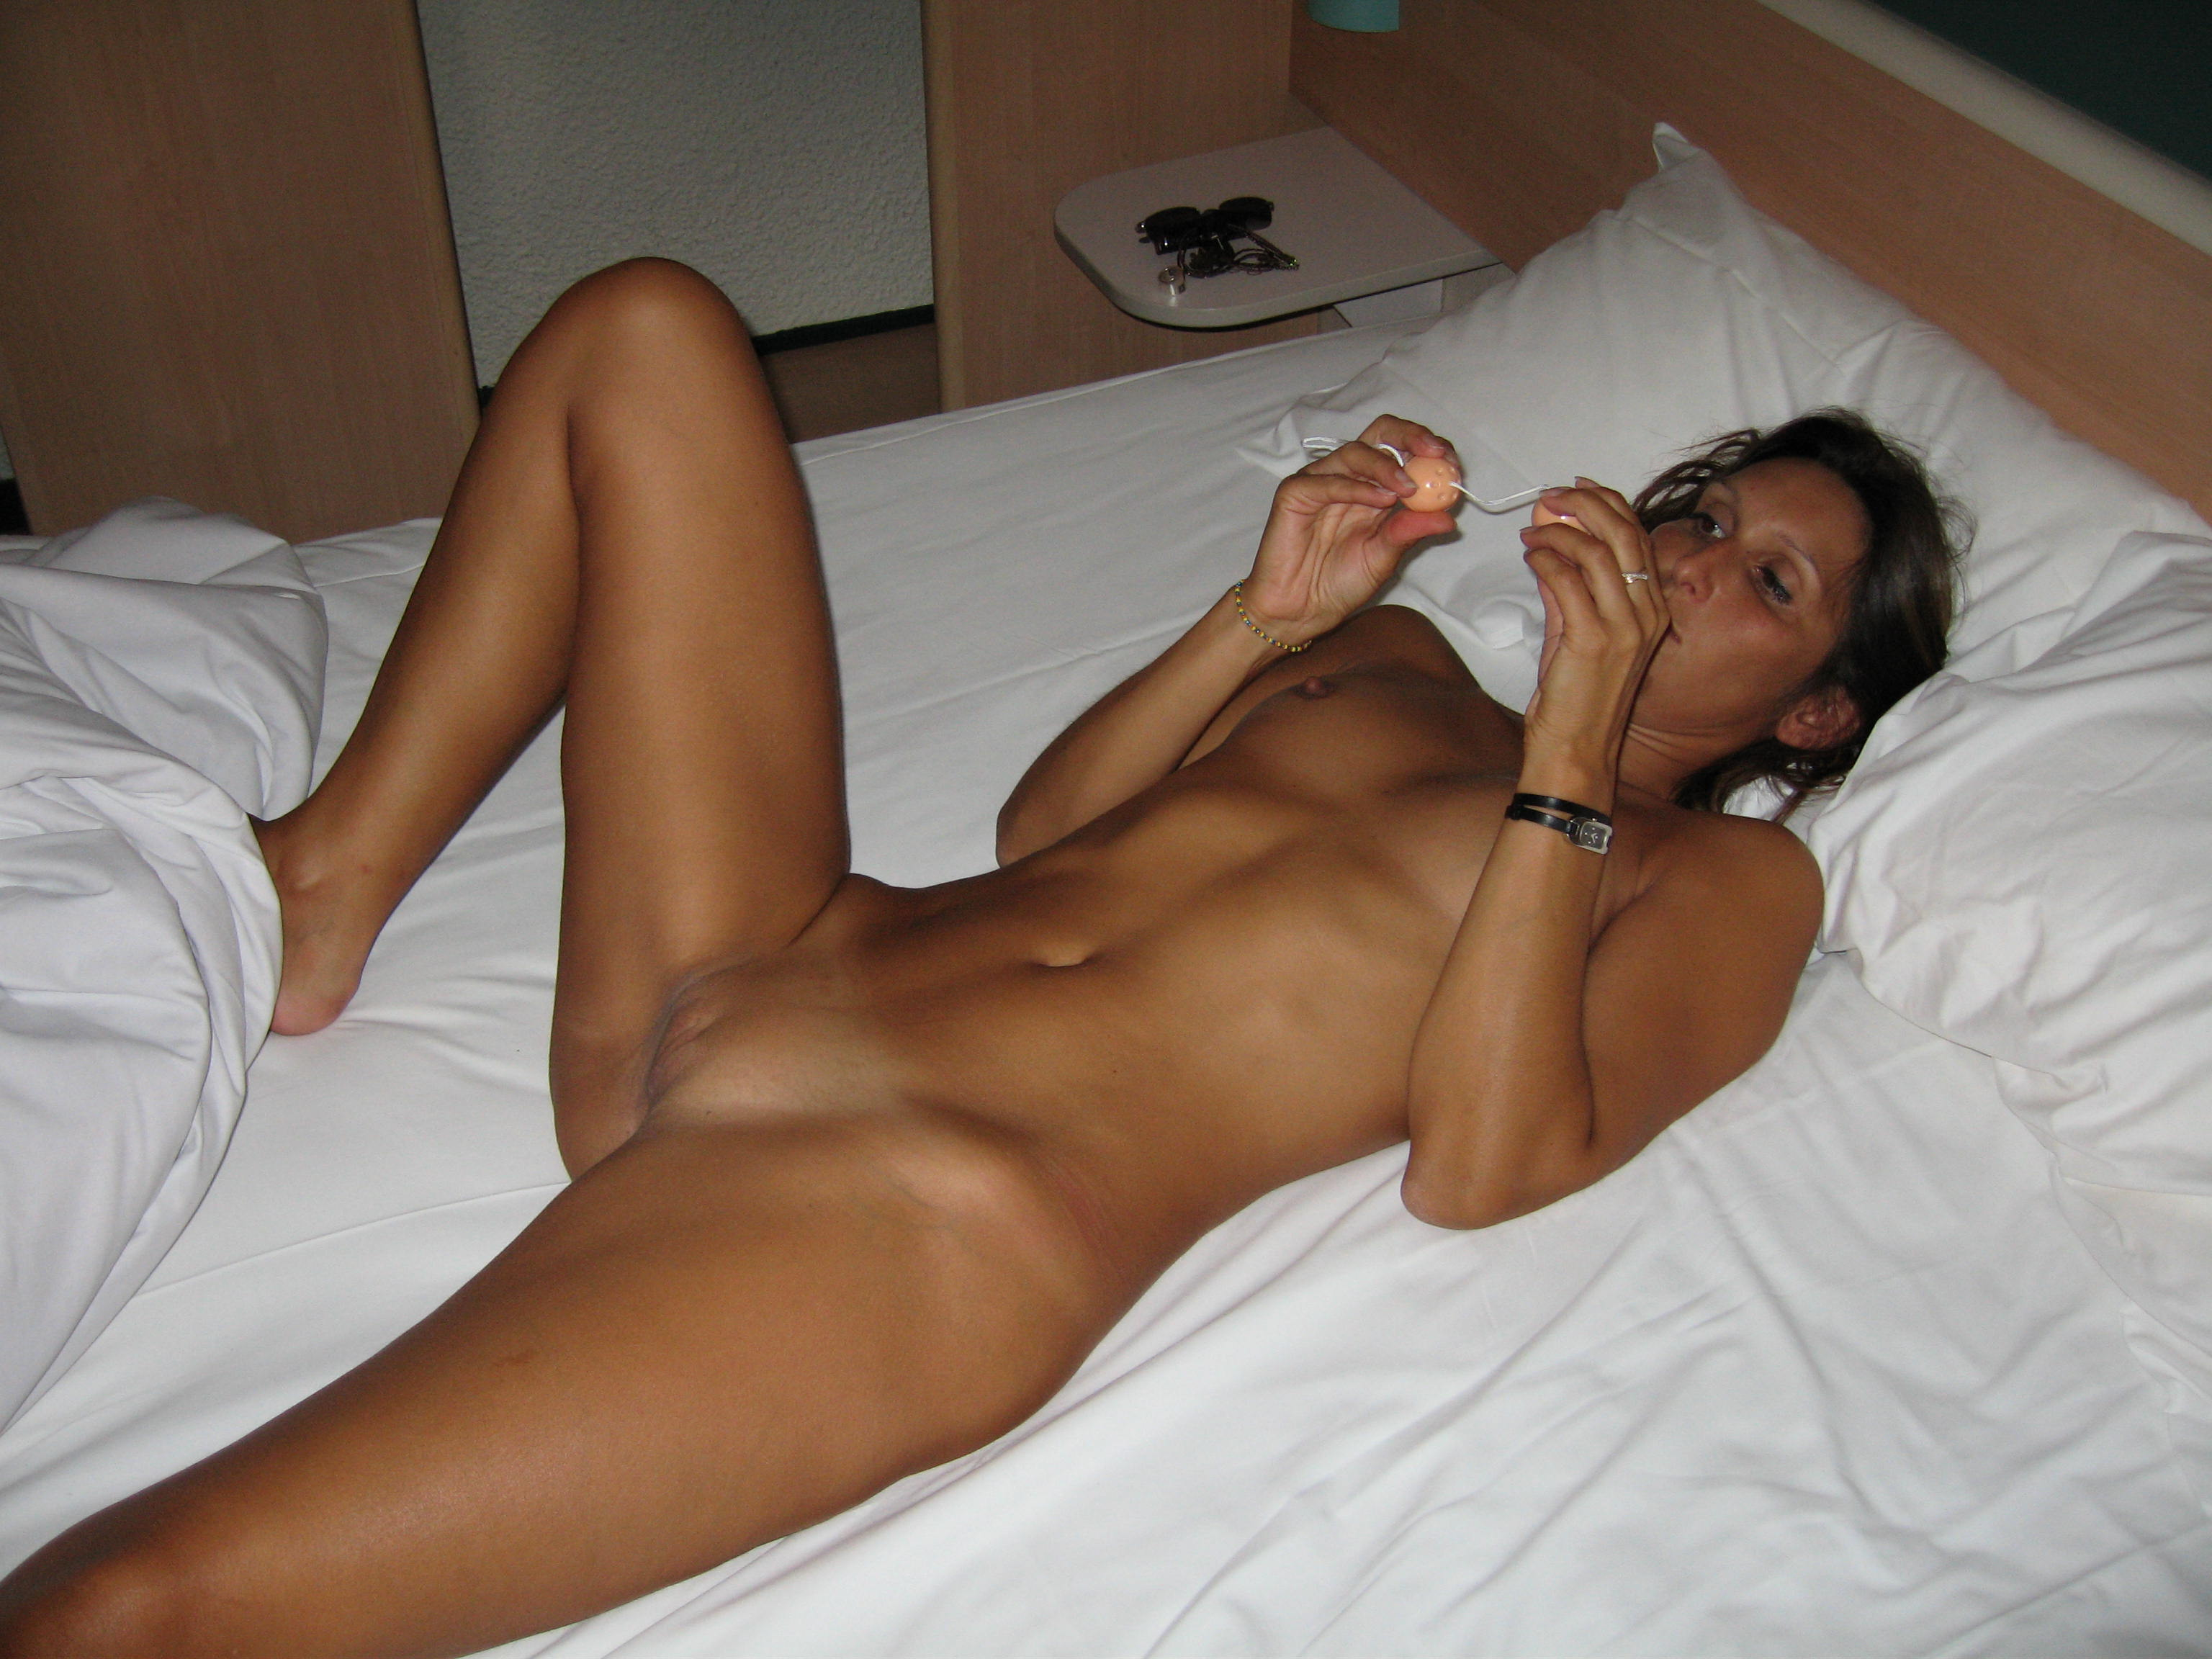 Hotwife milf ametuer couples